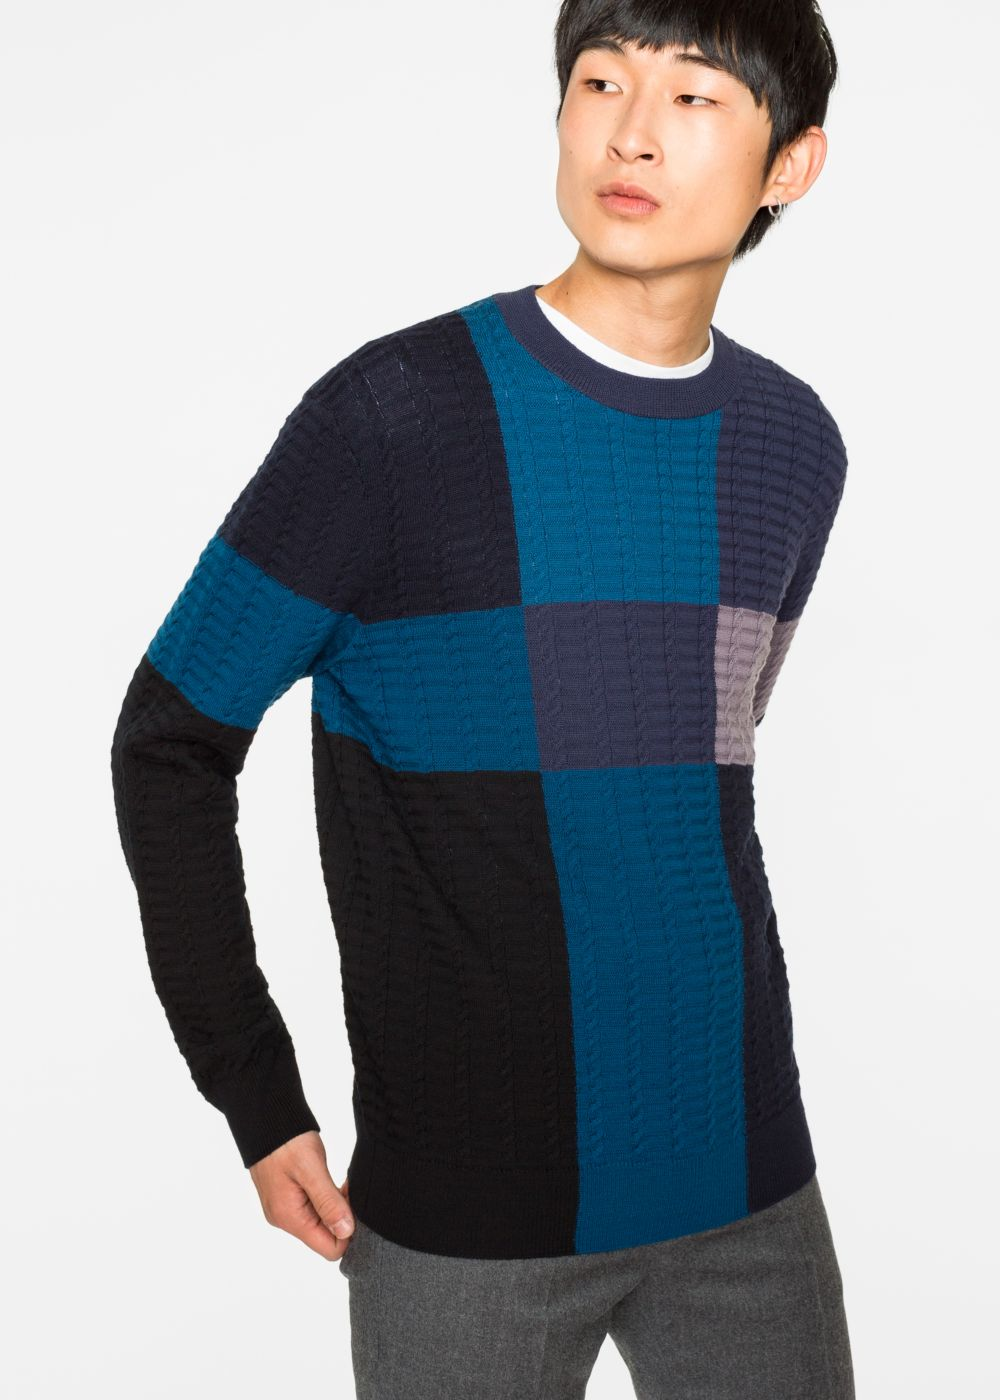 Paul Smith Men's Colour-Block Merino-Wool Cable-Knit Sweater